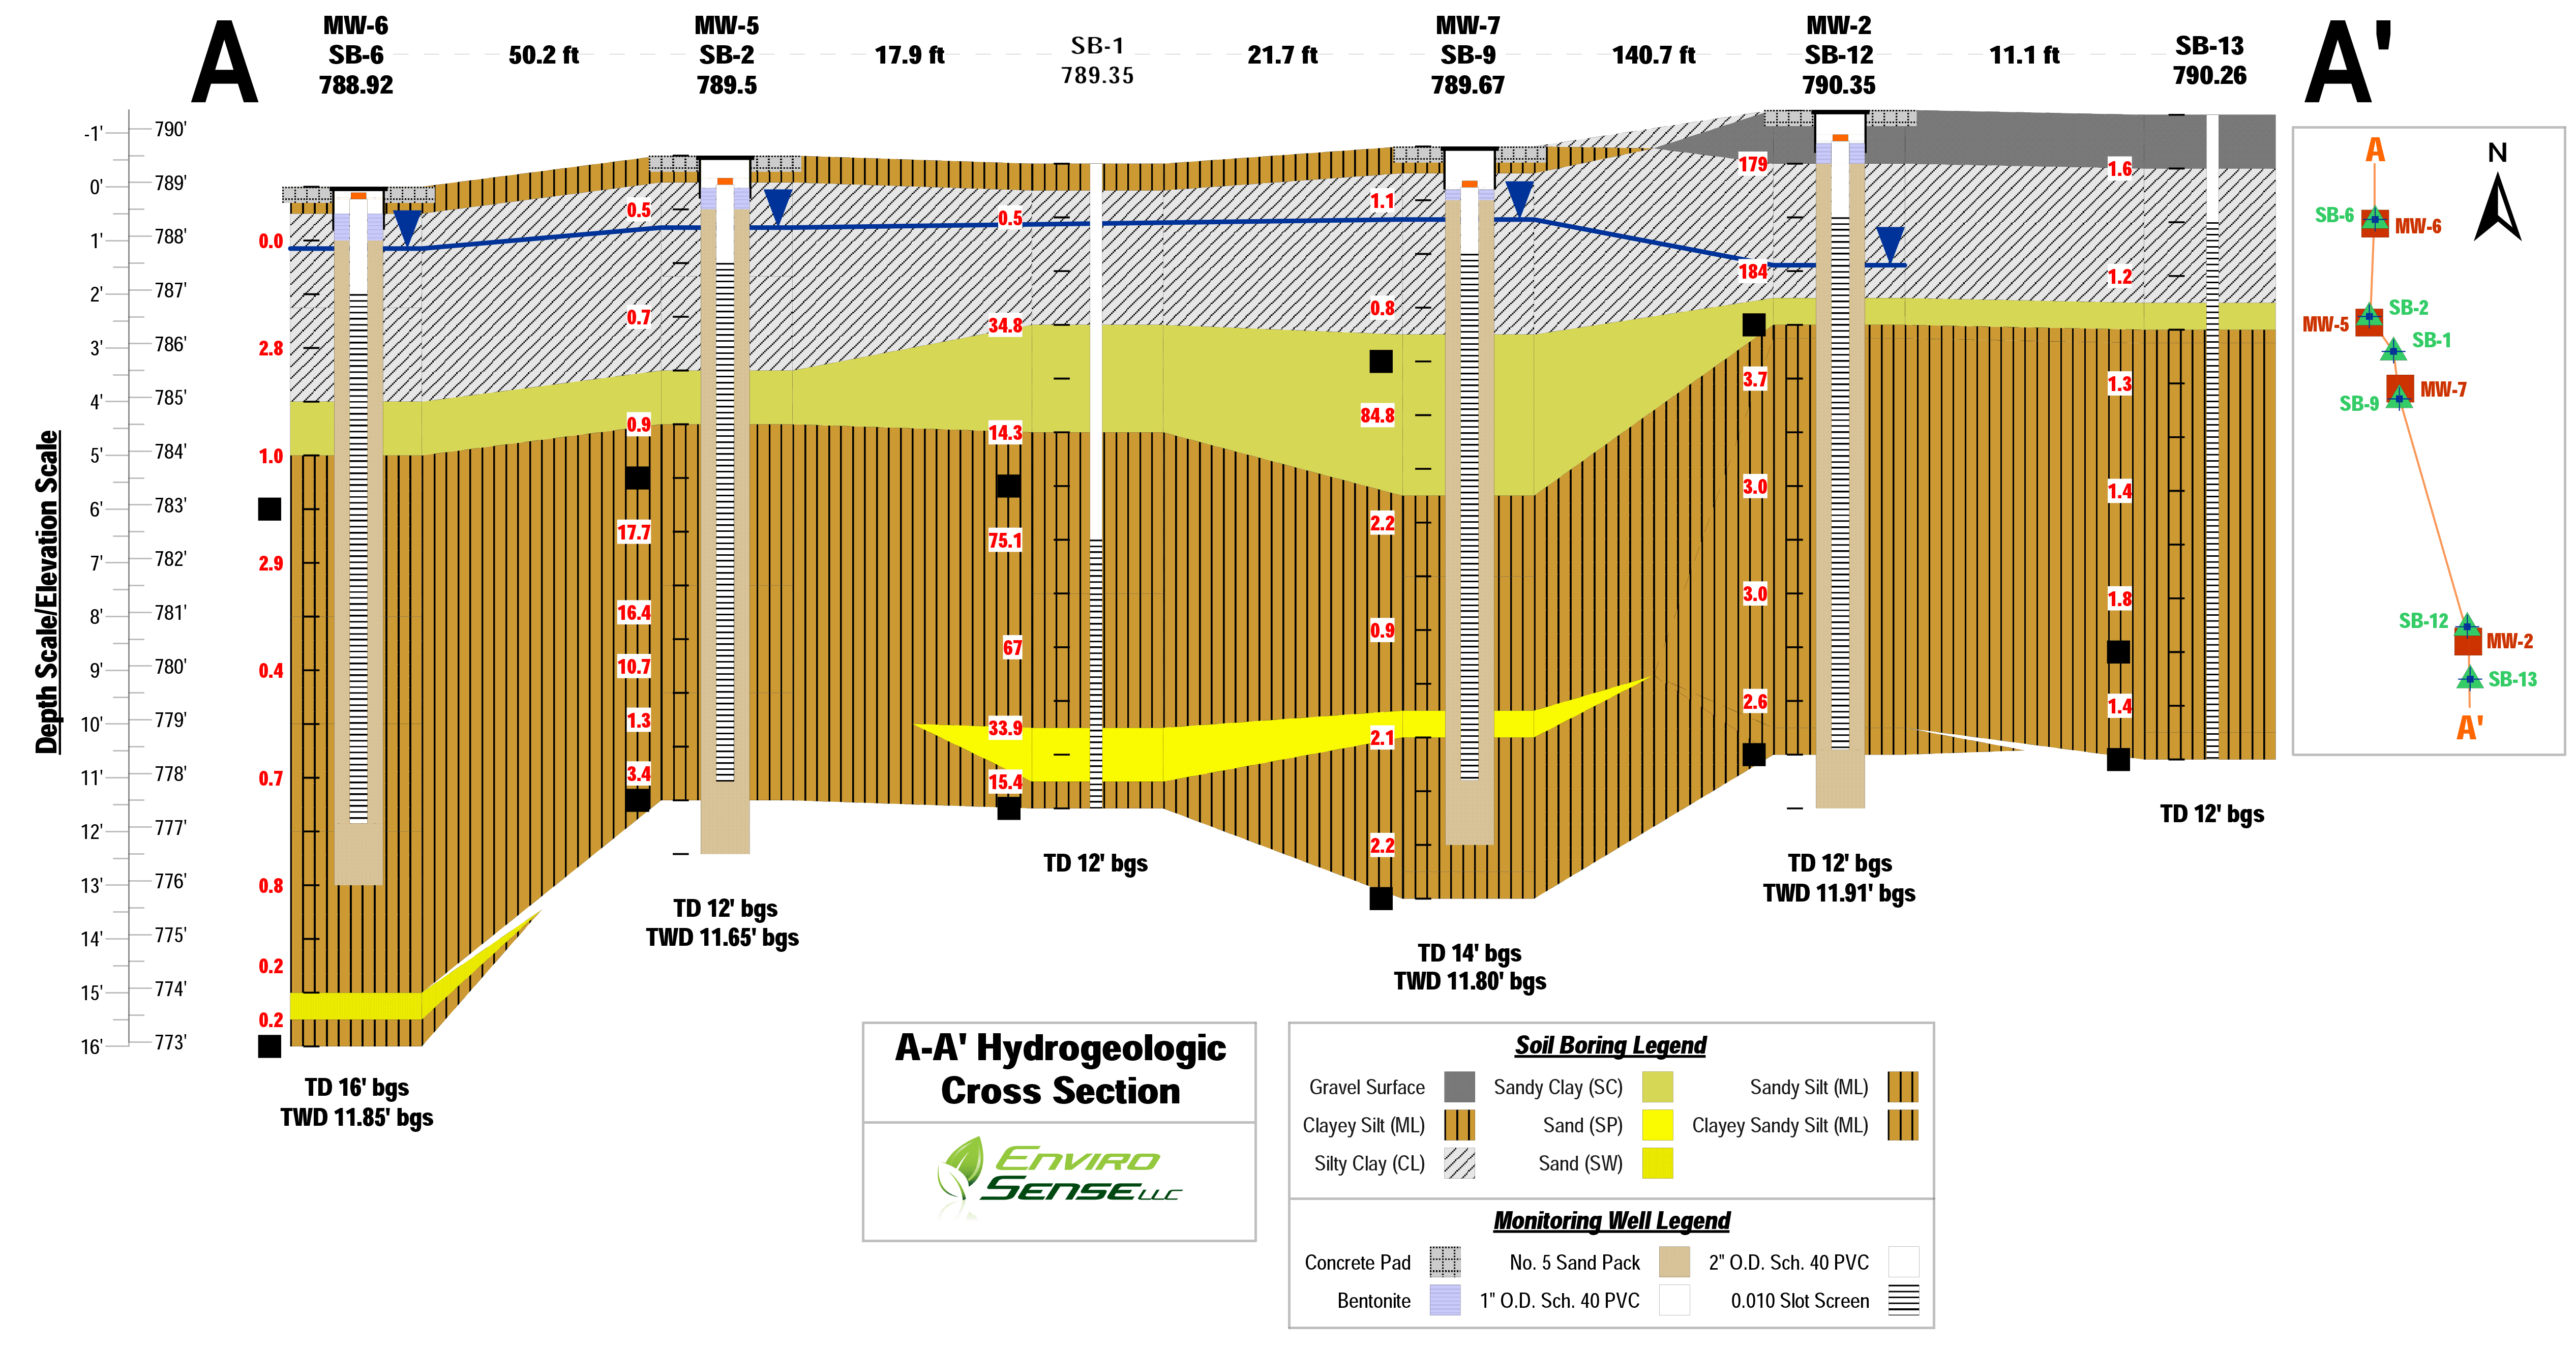 Strater - borehole, well log, cross section plotting software